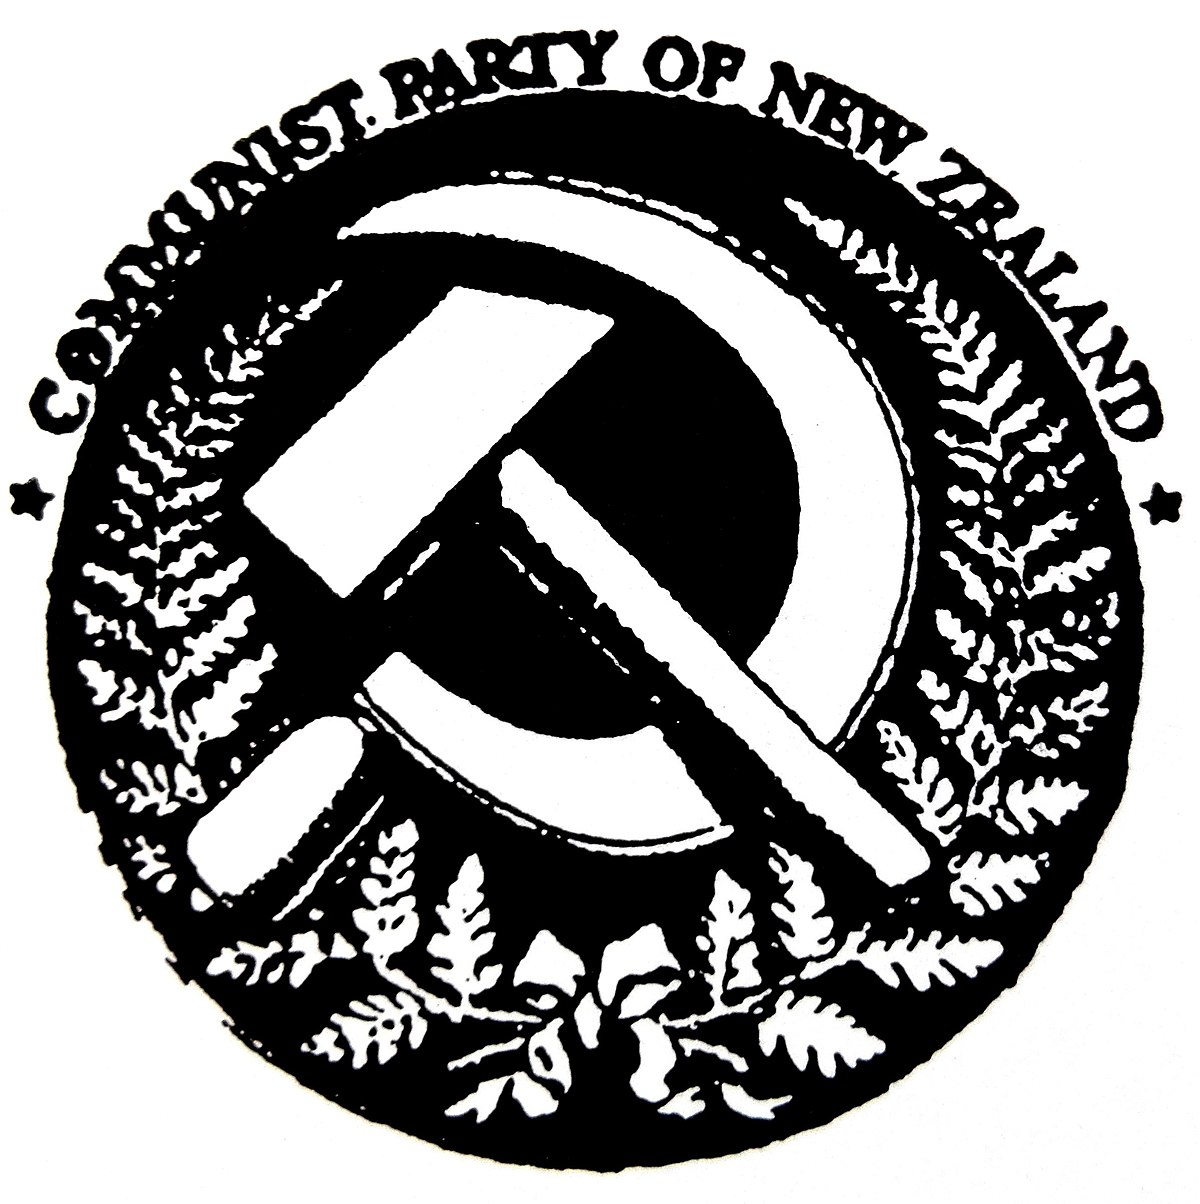 communist party of new zealand - wikipedia